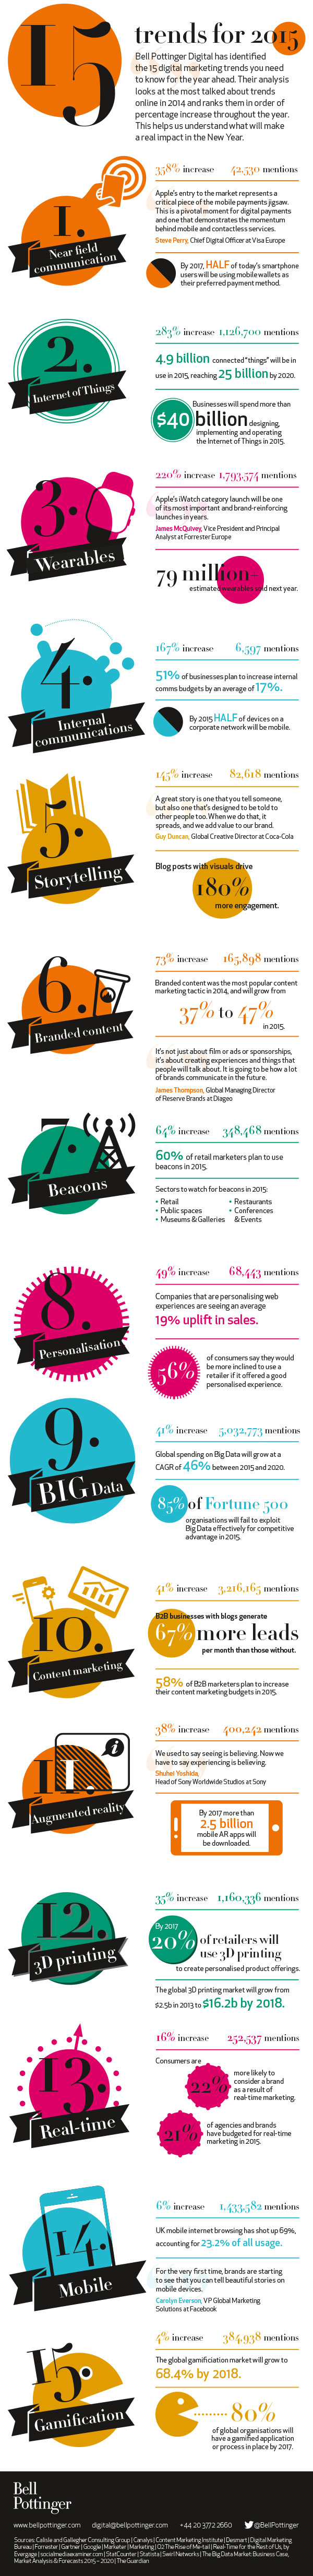 Bell Pottinger Digital - 15 trends for 2015 infographic